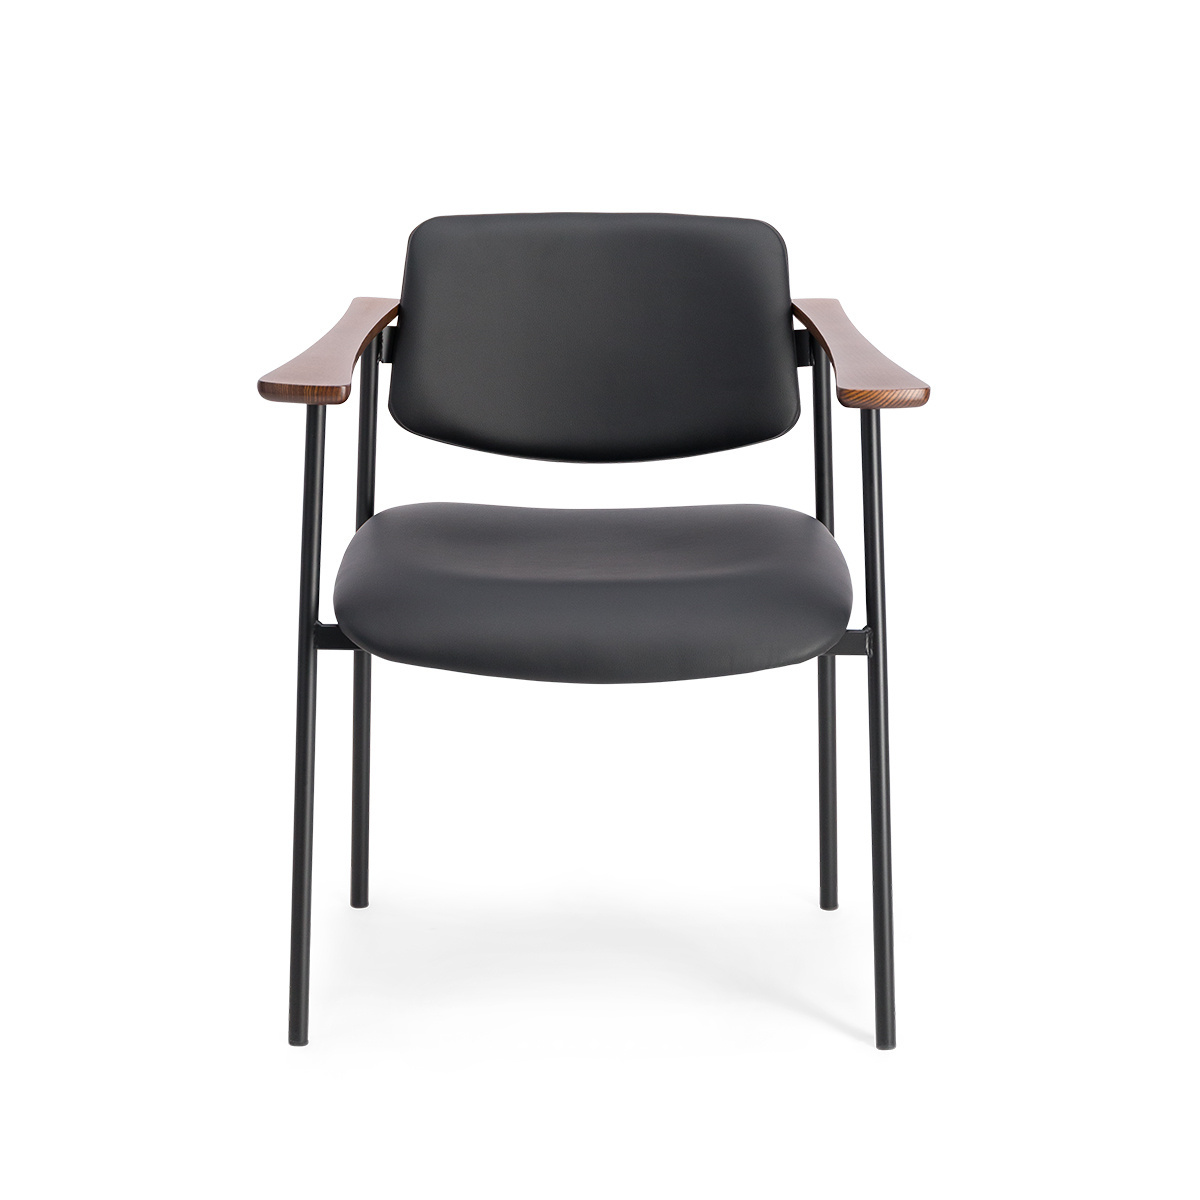 Fantastic Pio Armchair Black Leather With Cherrywood Frame Gmtry Best Dining Table And Chair Ideas Images Gmtryco